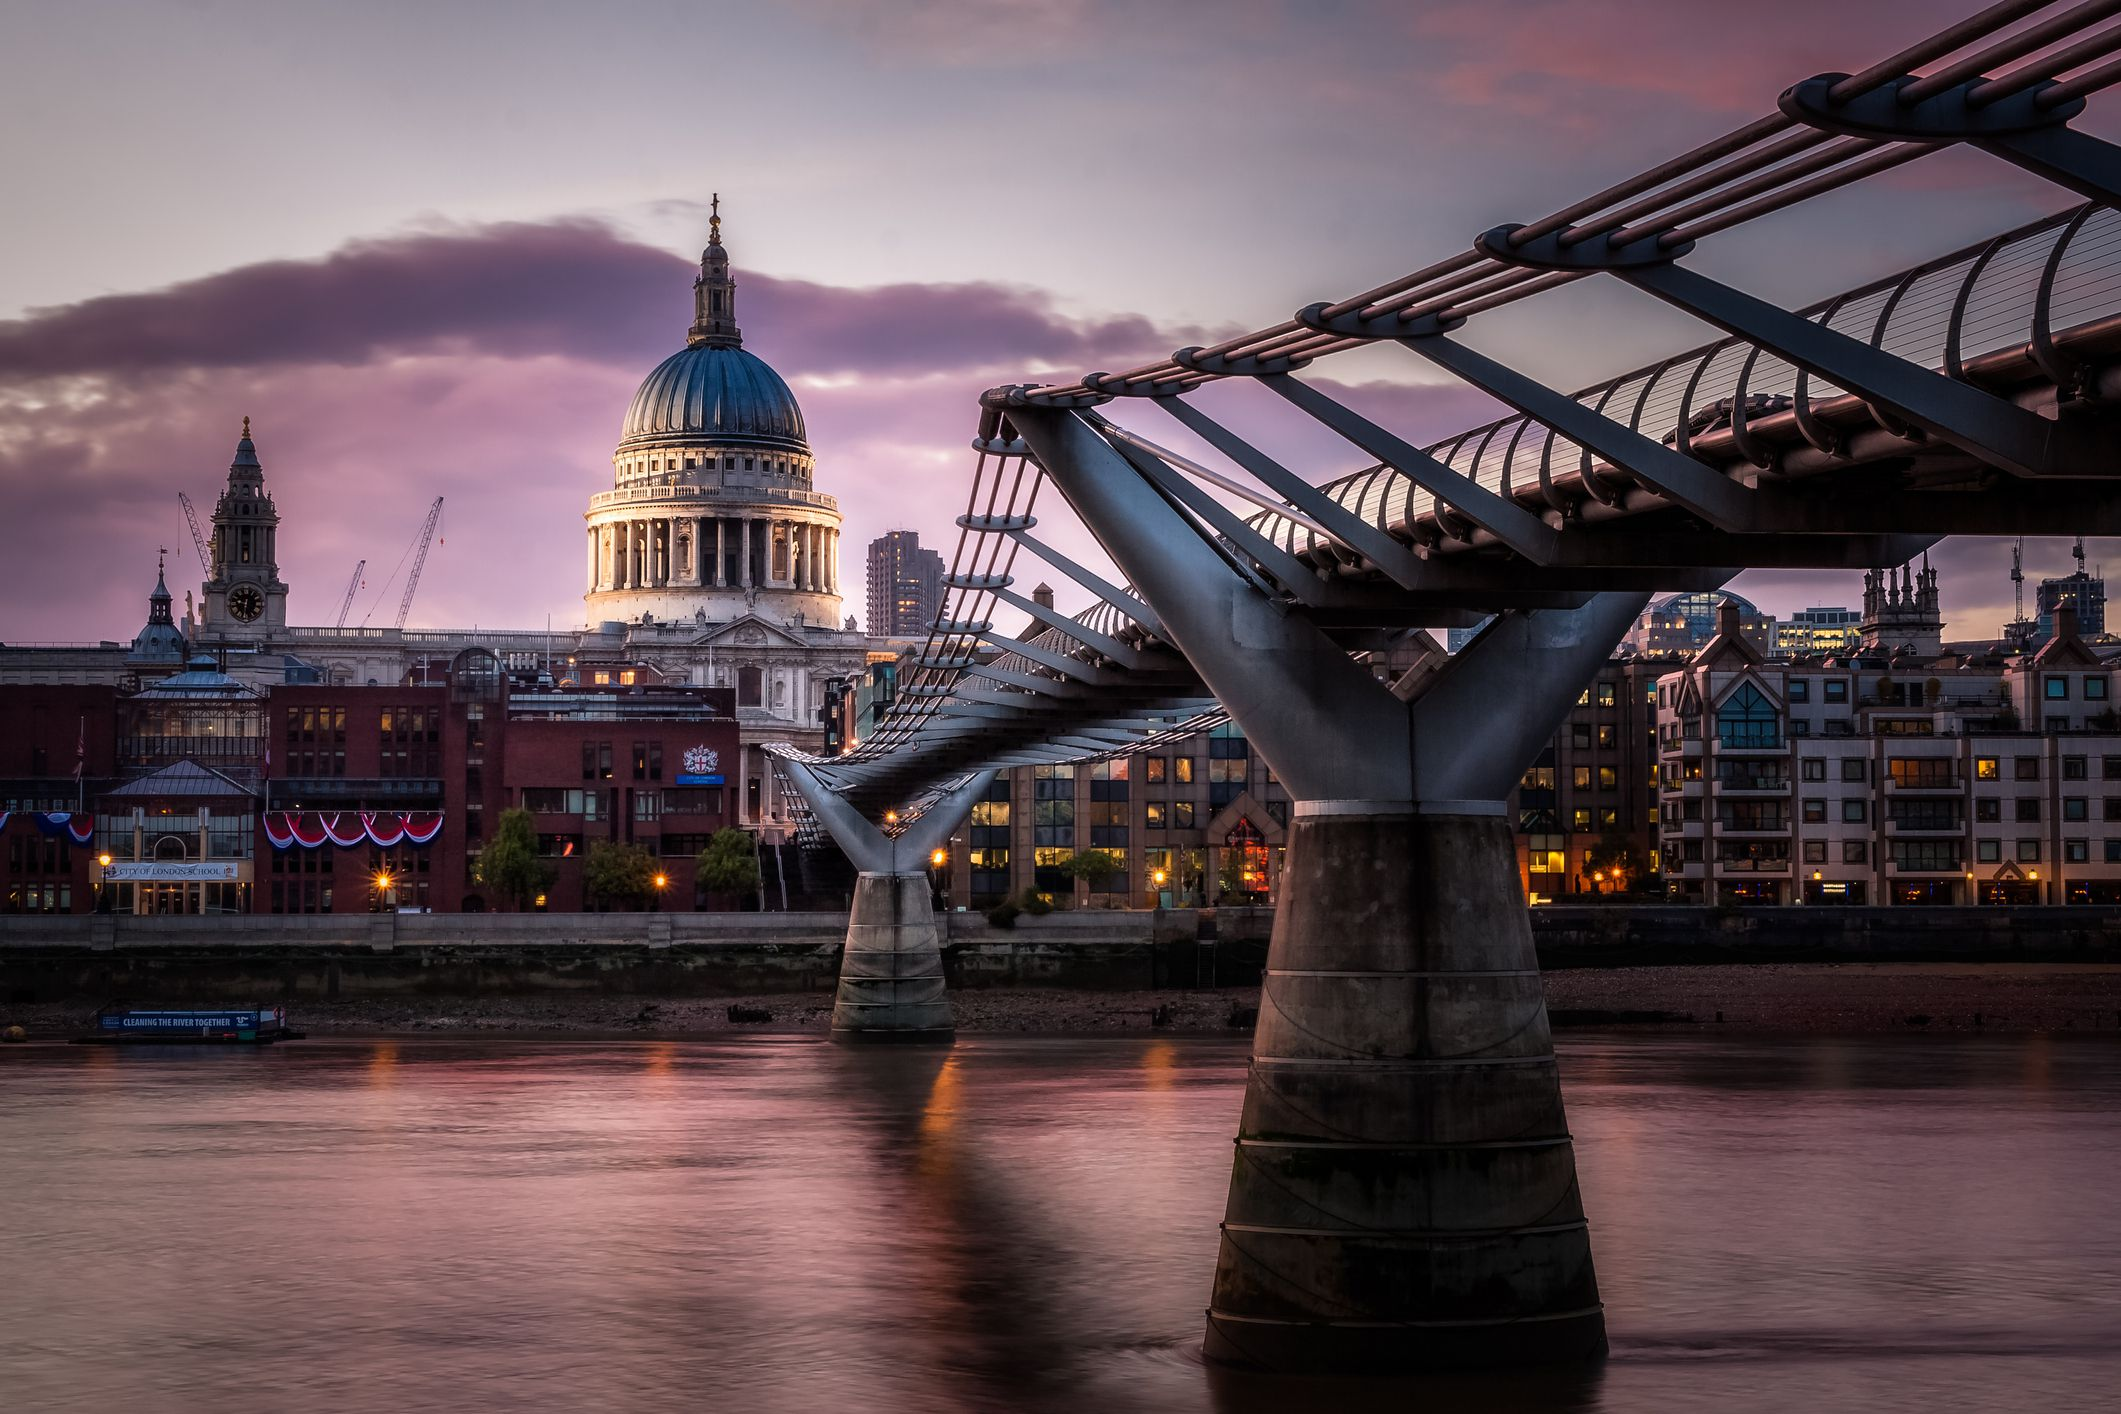 20 Most Popular UK Cities for International Visitors